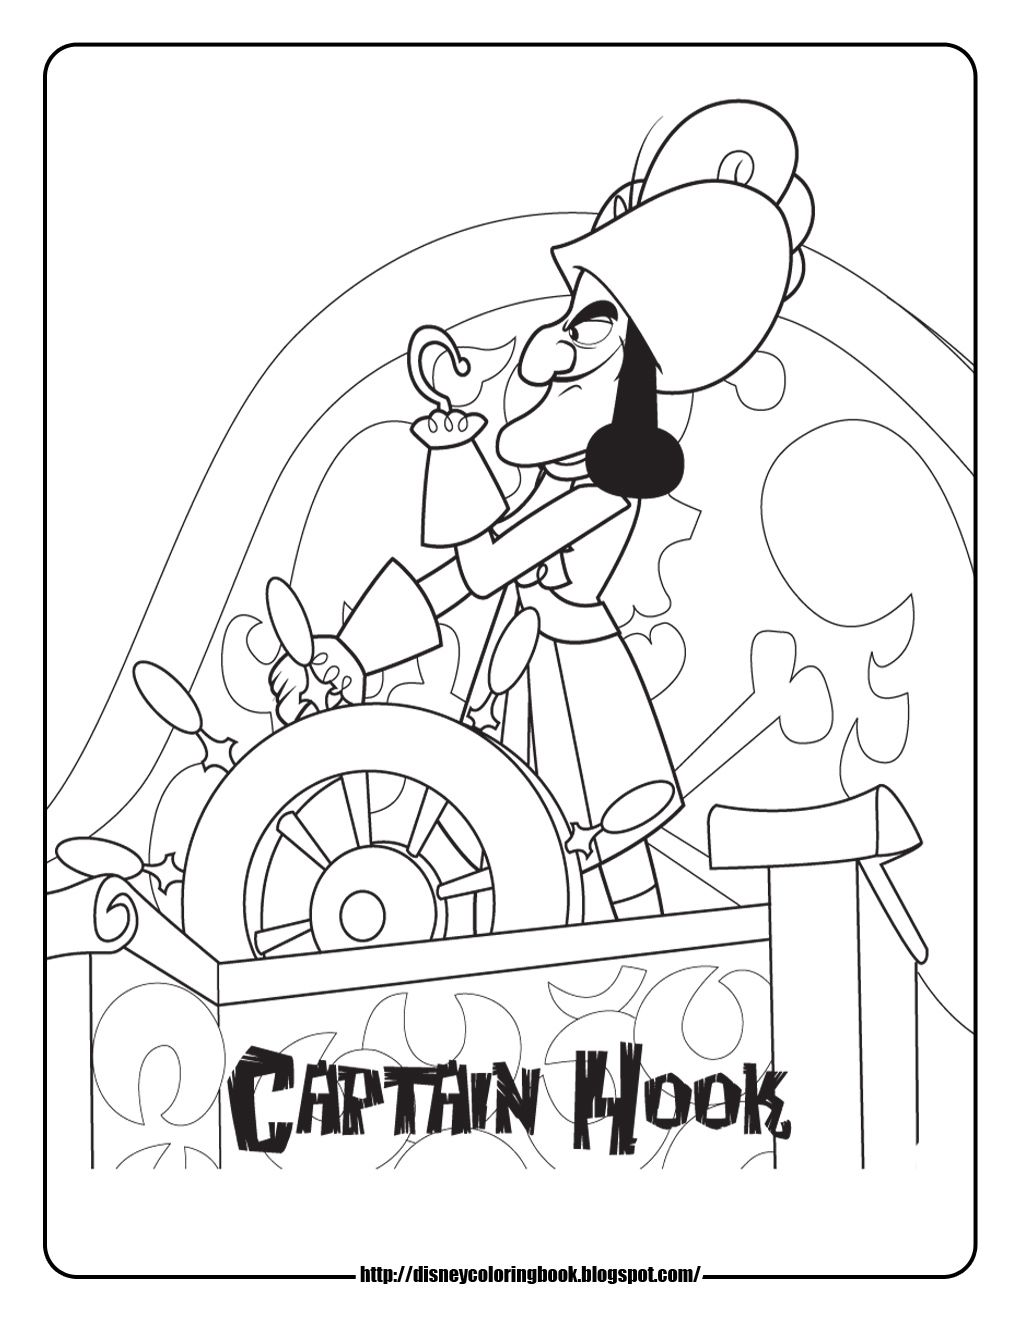 Free disney junior colouring pages - Disney Coloring Pages And Sheets For Kids Jake And The Neverland